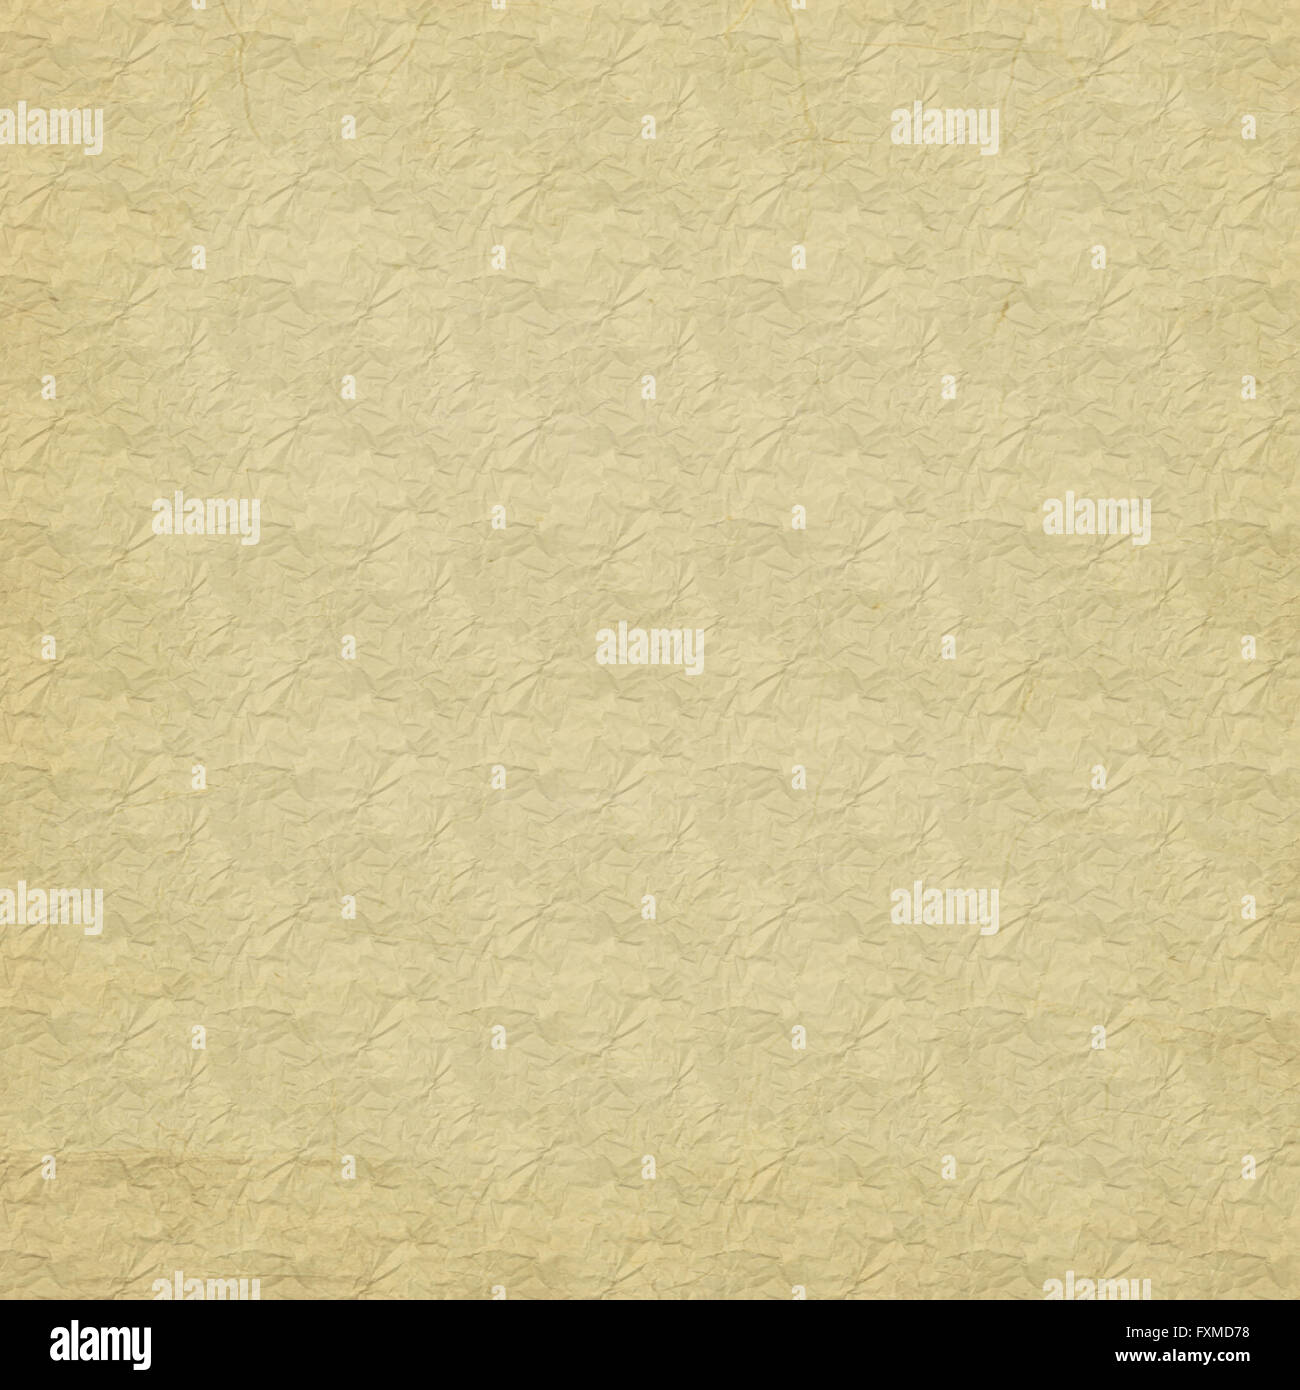 brown seamless grunge texture paper. for vintage layout design, Powerpoint templates